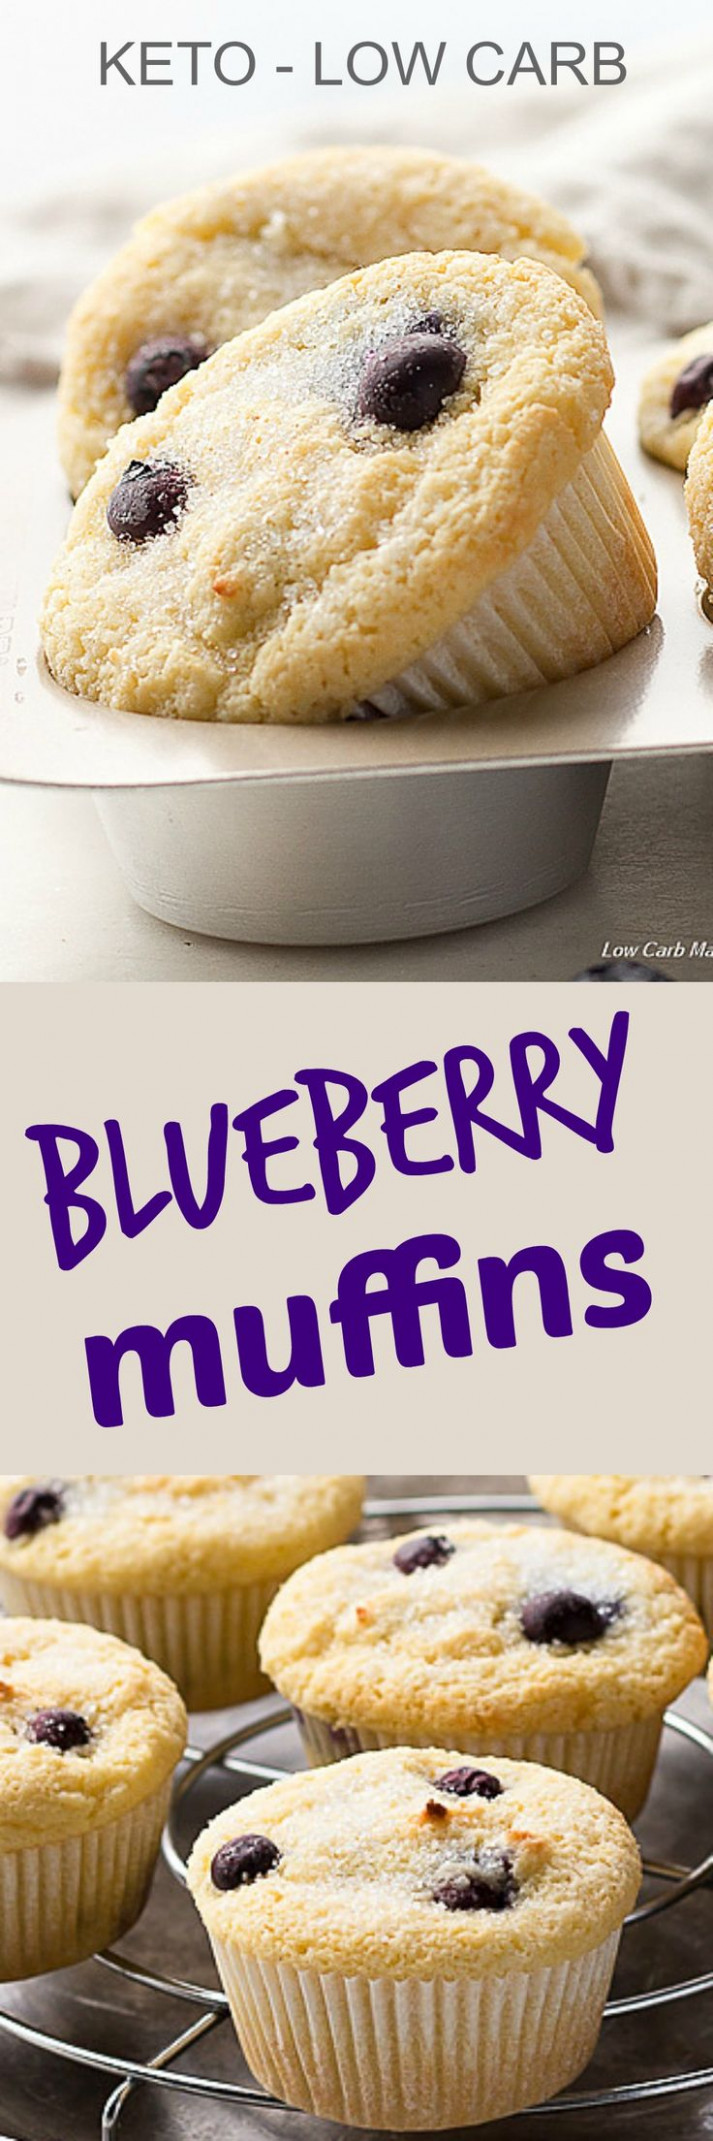 These keto blueberry muffins are low carb and gluten free ..